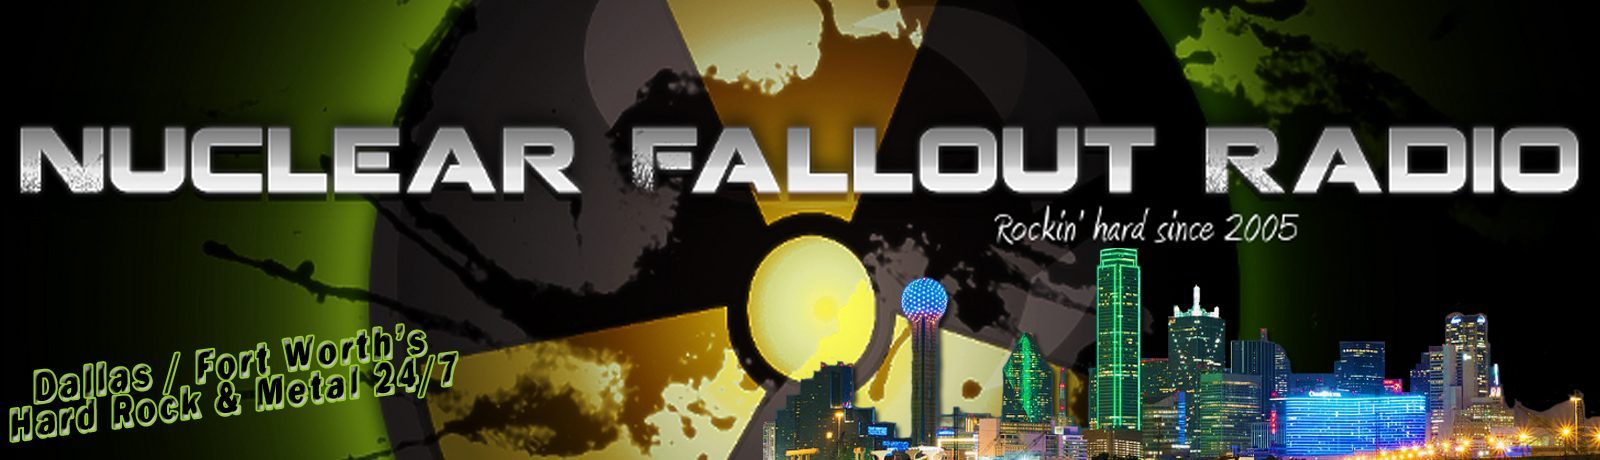 Nuclear Fallout Radio - Dallas/Fort Worth Hard Rock/Metal